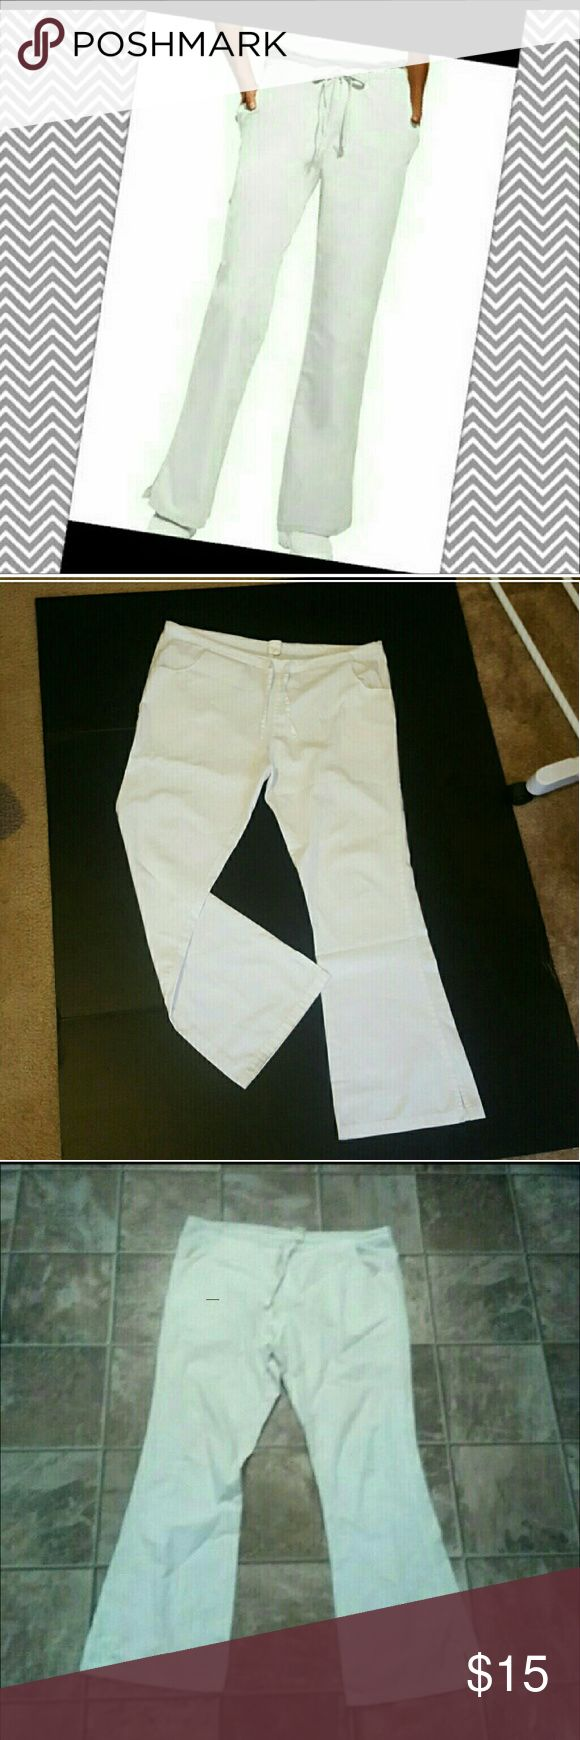 """White Dickies Scrub Pants Flare Nurse Uniform Med White Dickies Scrub Pants, size Medium, in great condition. Laying flat, they measure 19"""" across the waist, 39.5"""" long, 29"""" inseam.  They tie at the waist & have pockets.  Smoke free home. I will gladly bundle items to give you a discount (the more you buy, the cheaper I can let everything go!). Many items can be added on for only $1. Dickies Pants Boot Cut & Flare"""